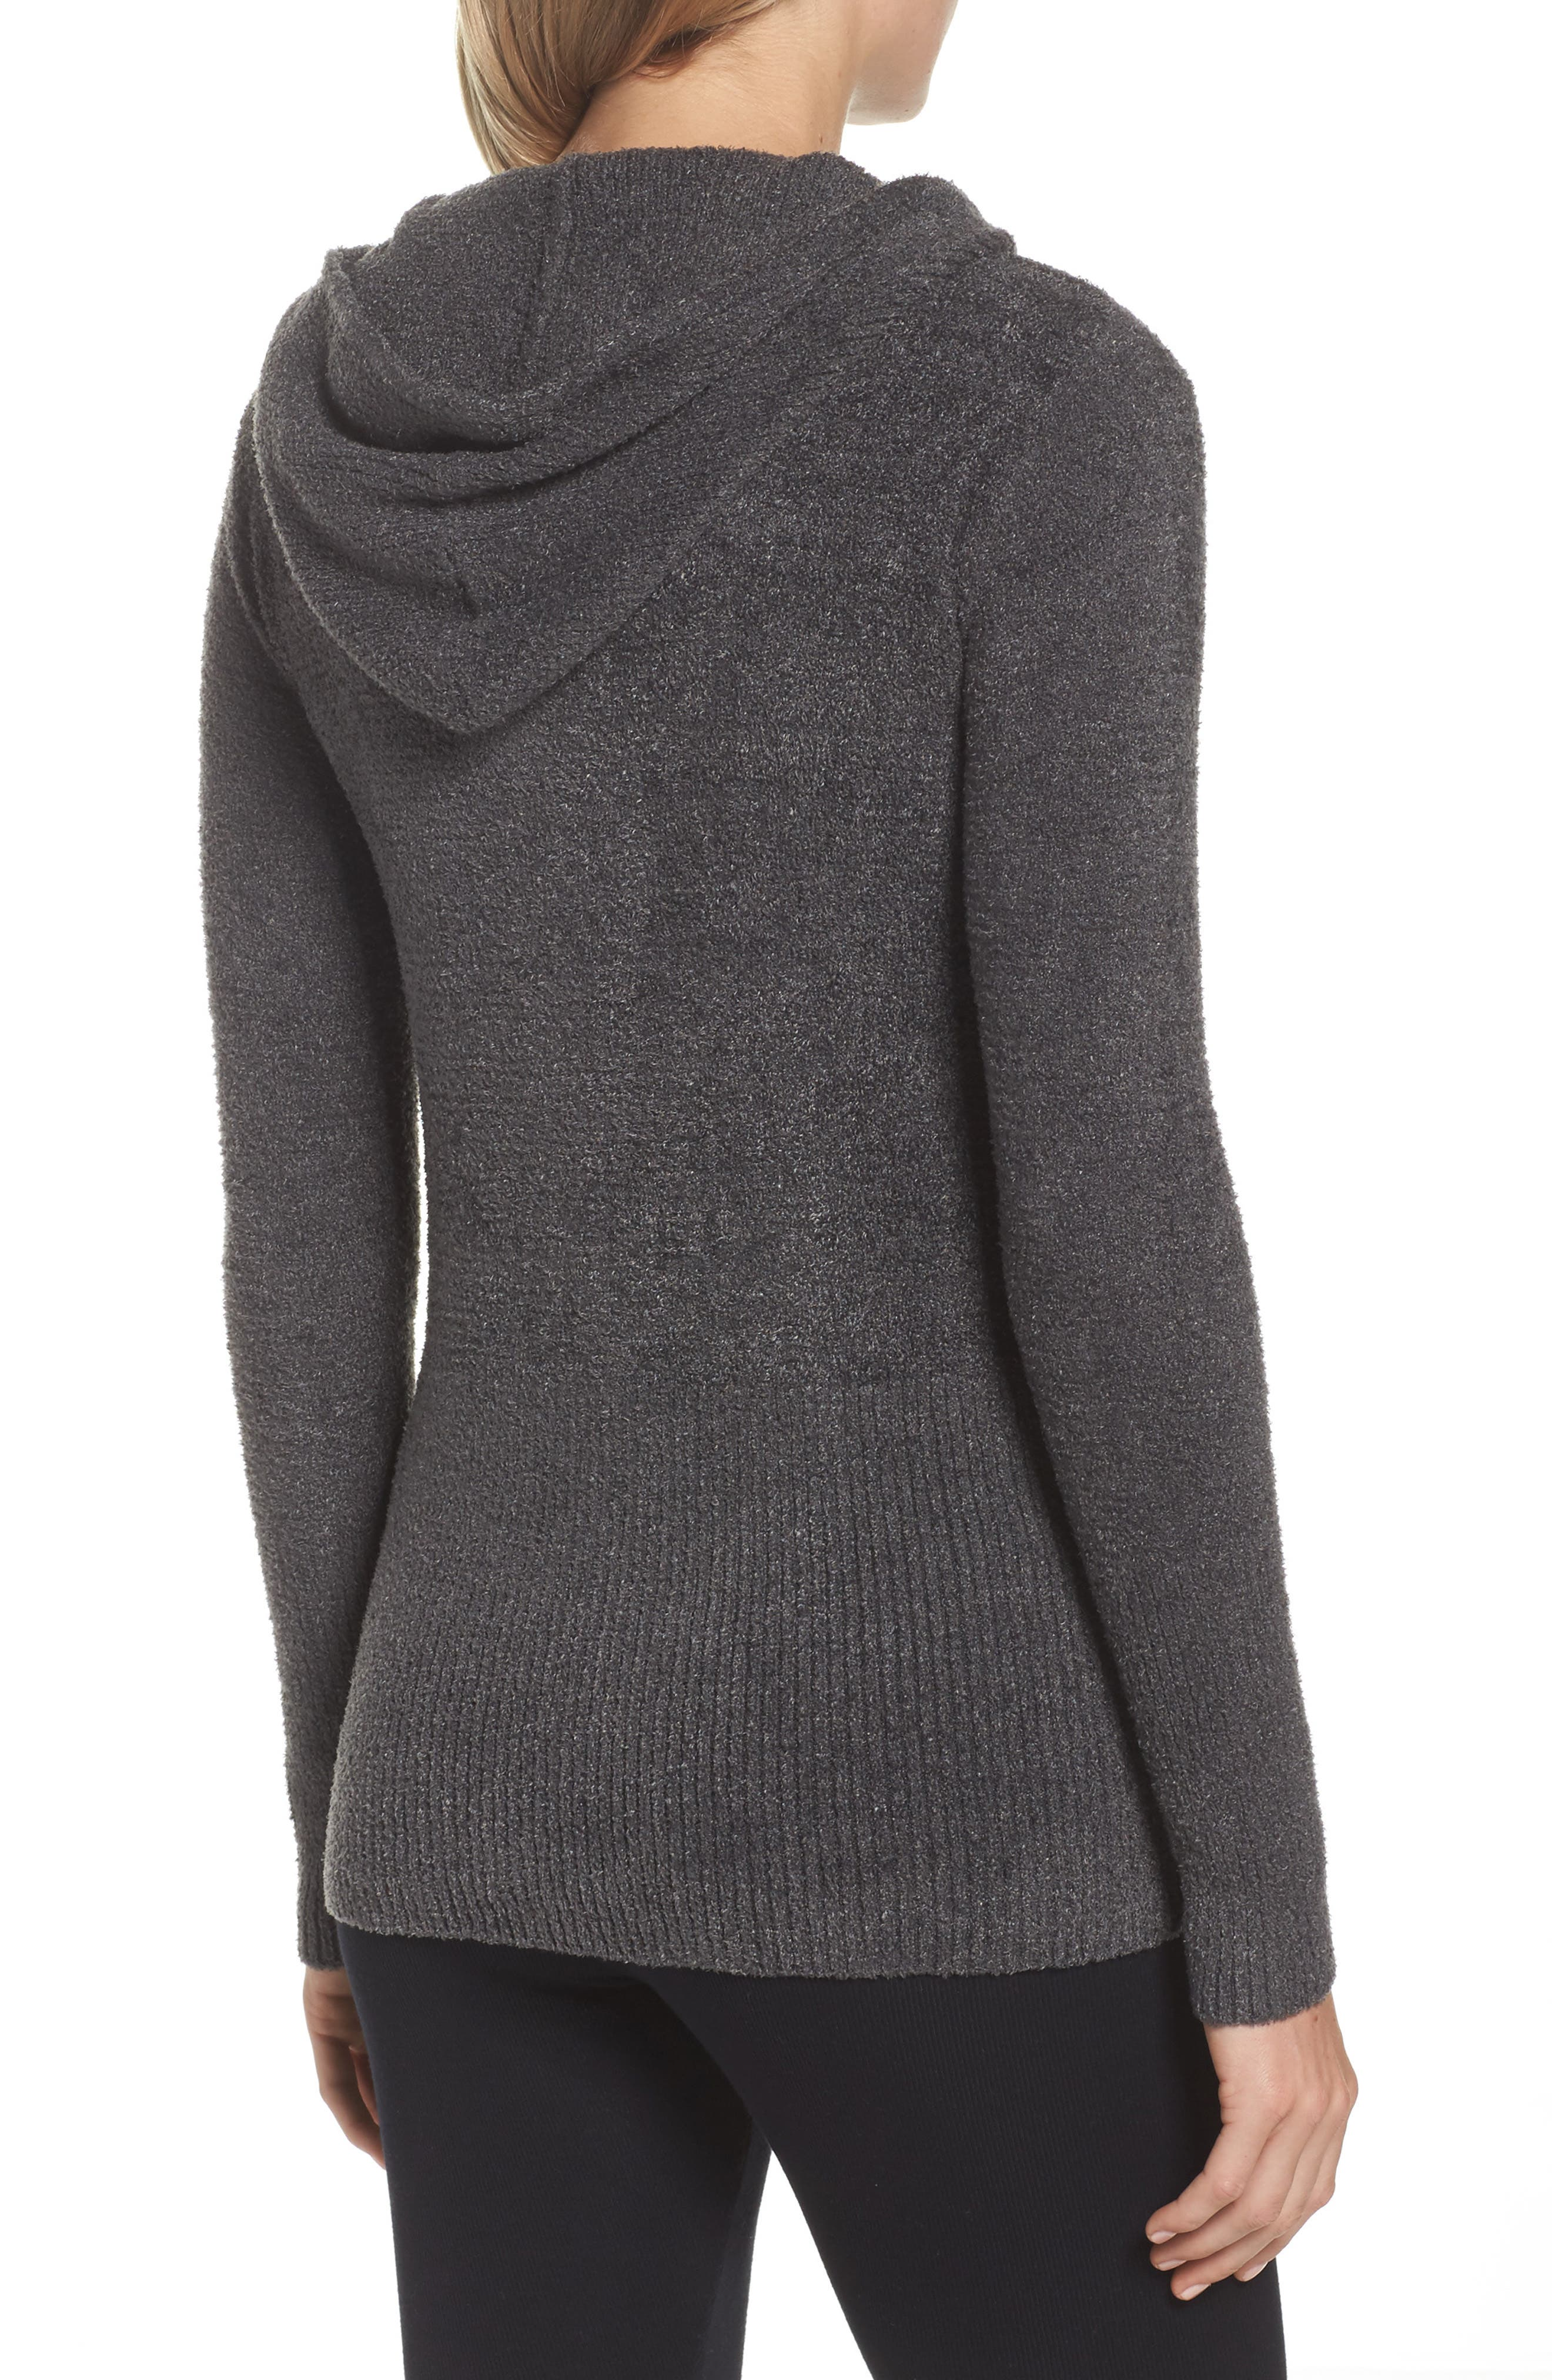 CozyChic Lite<sup>®</sup> Hoodie,                             Alternate thumbnail 2, color,                             023